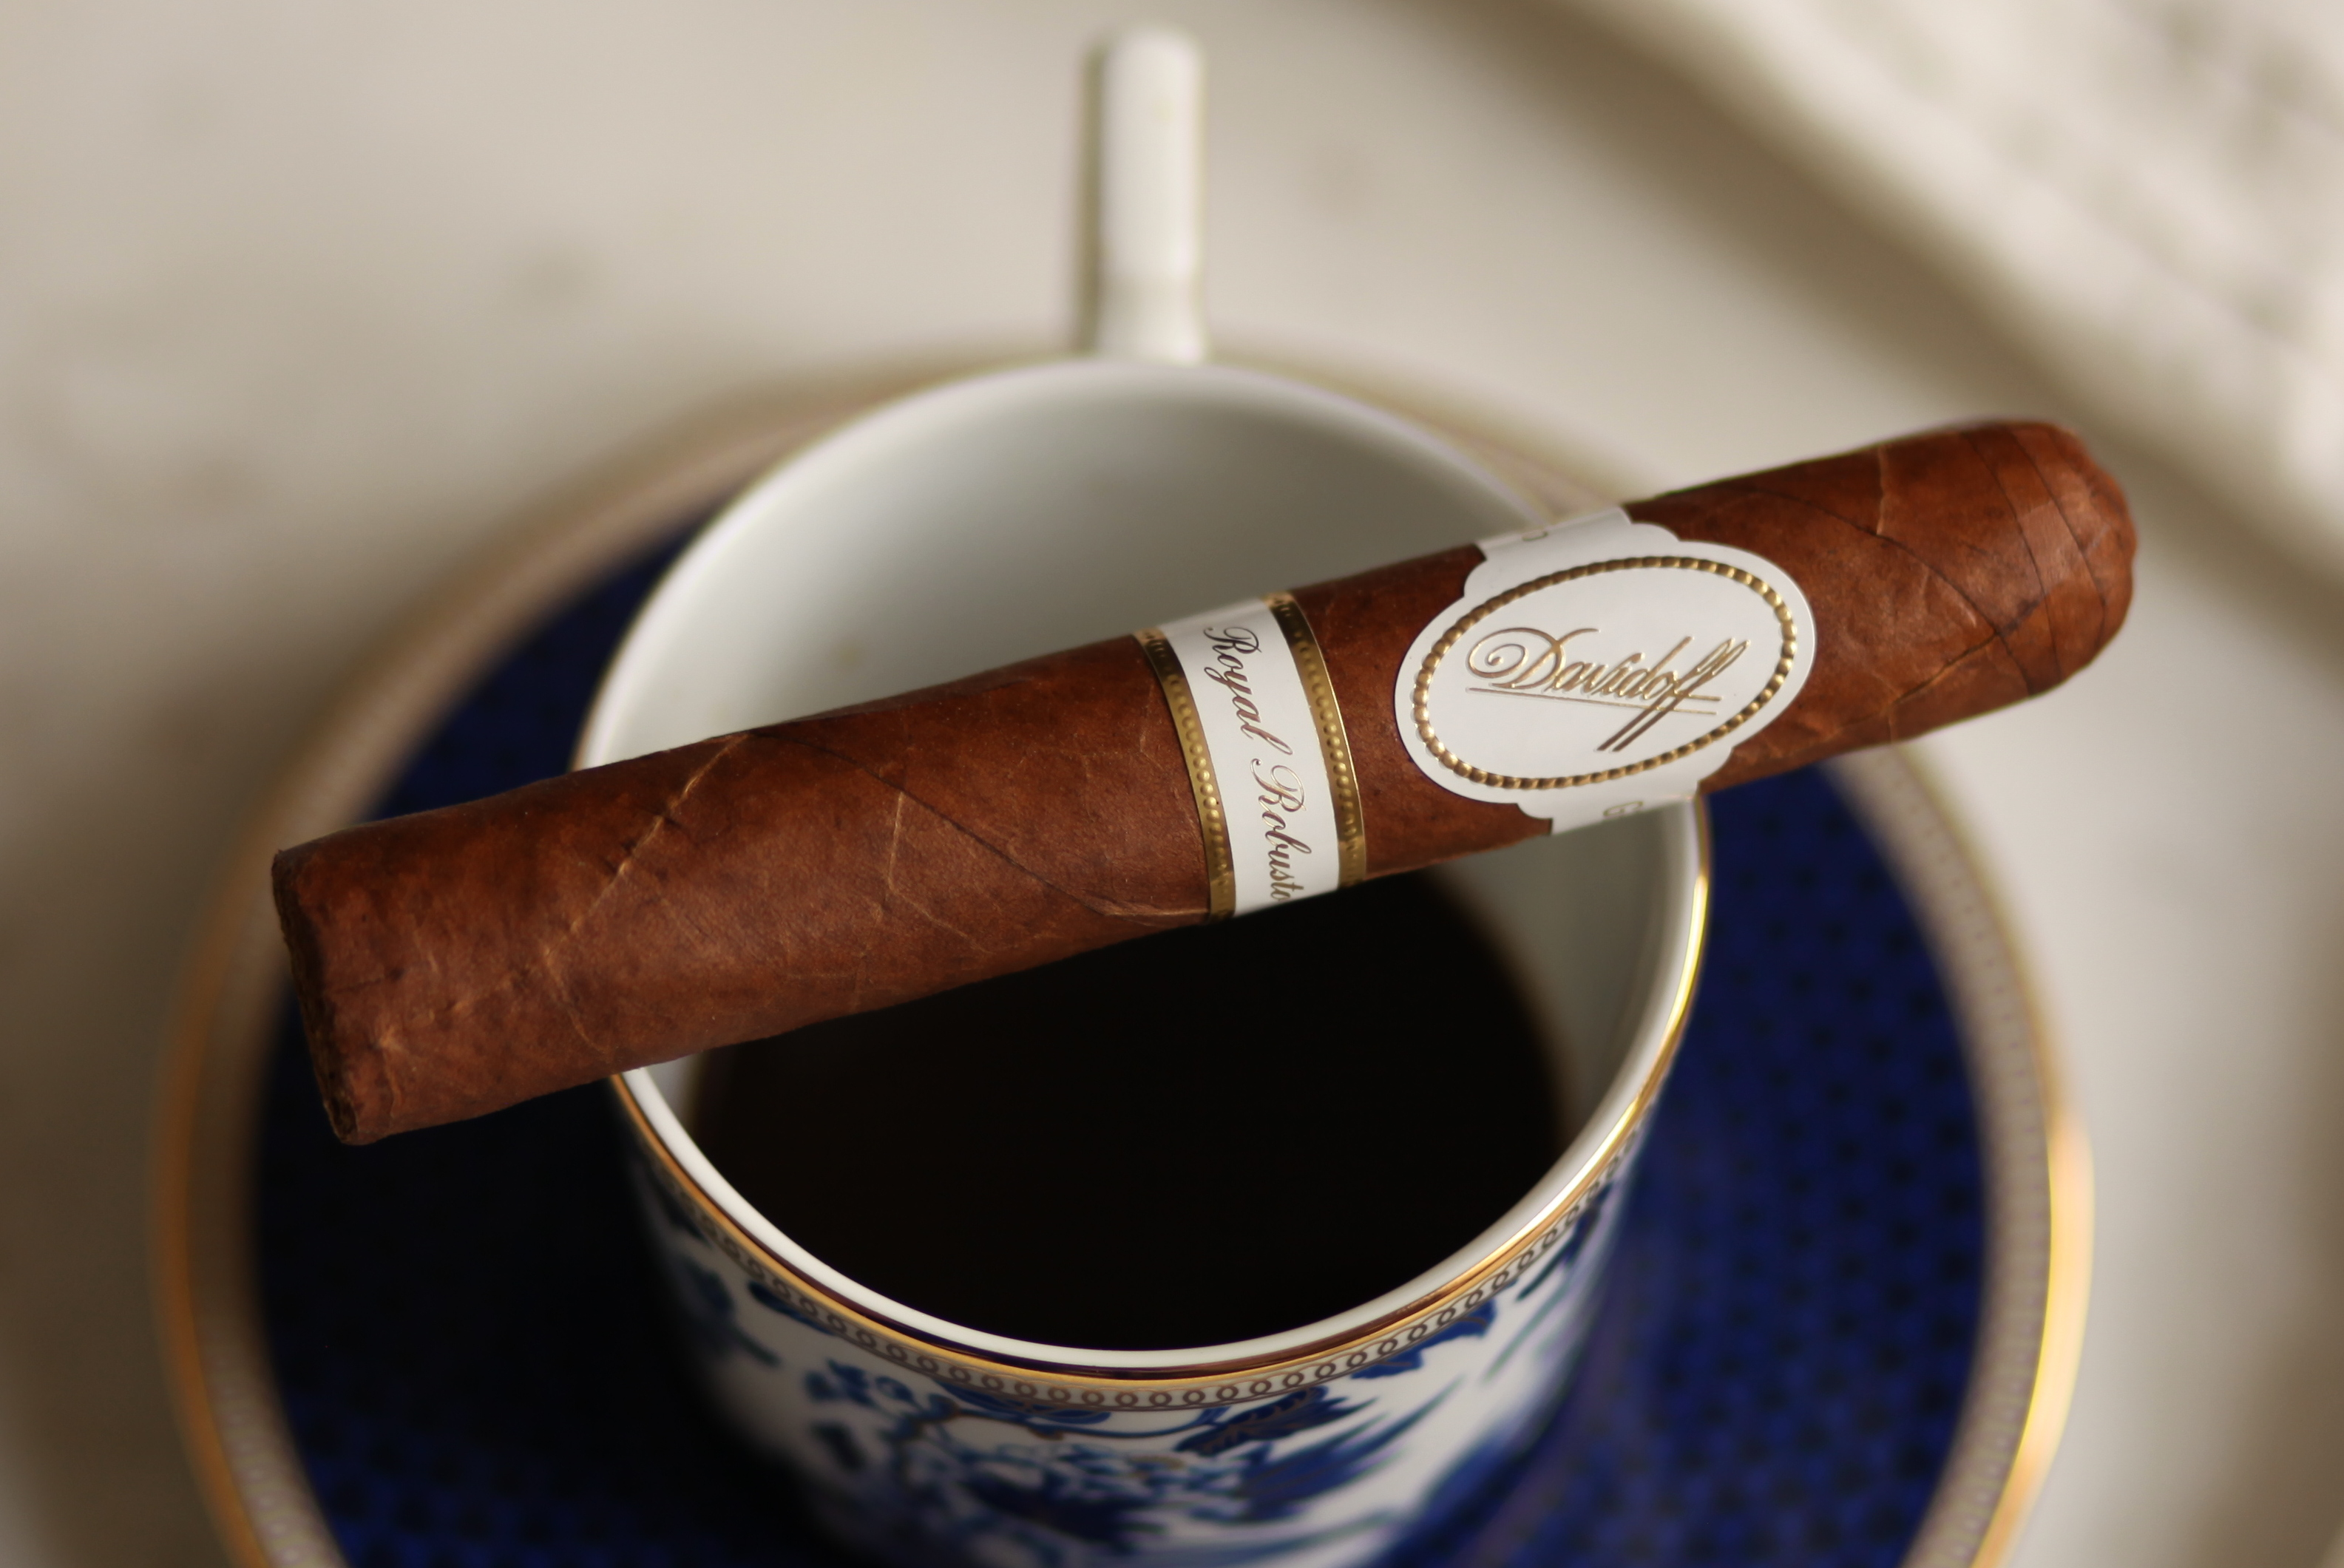 Davidoff Royal Robusto Review